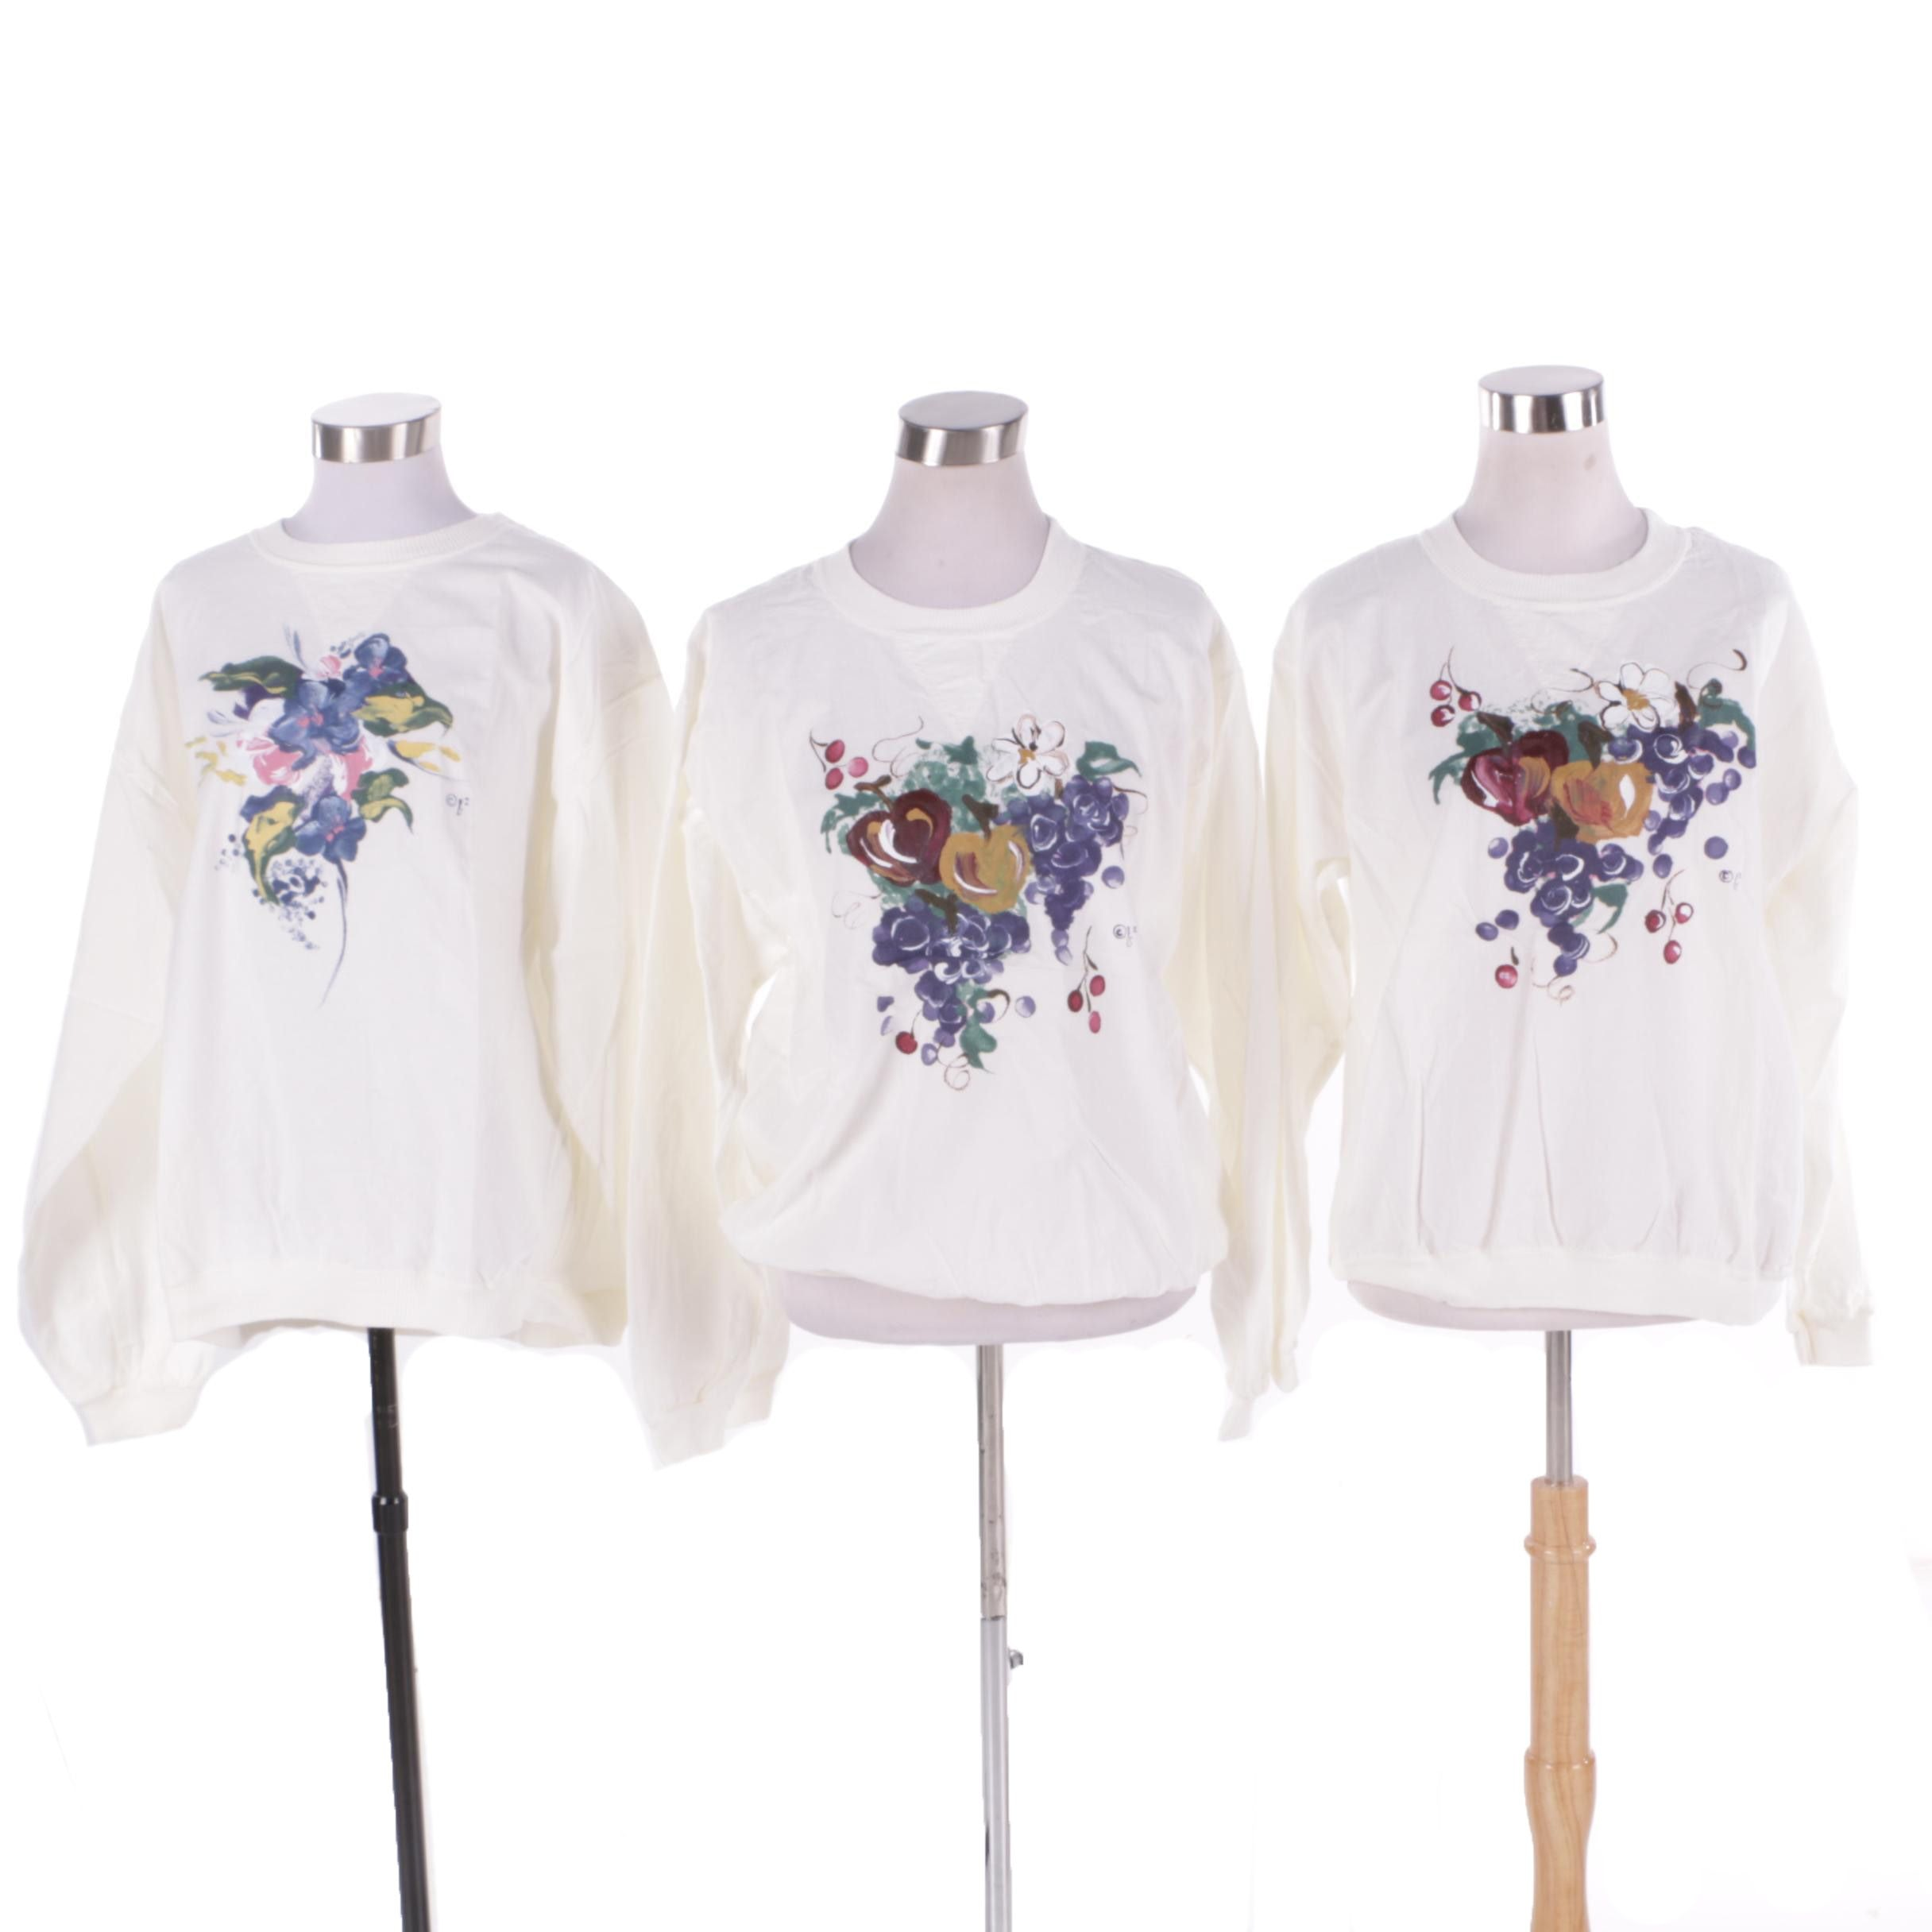 Women's Hand-Painted Long Sleeve T-Shirts